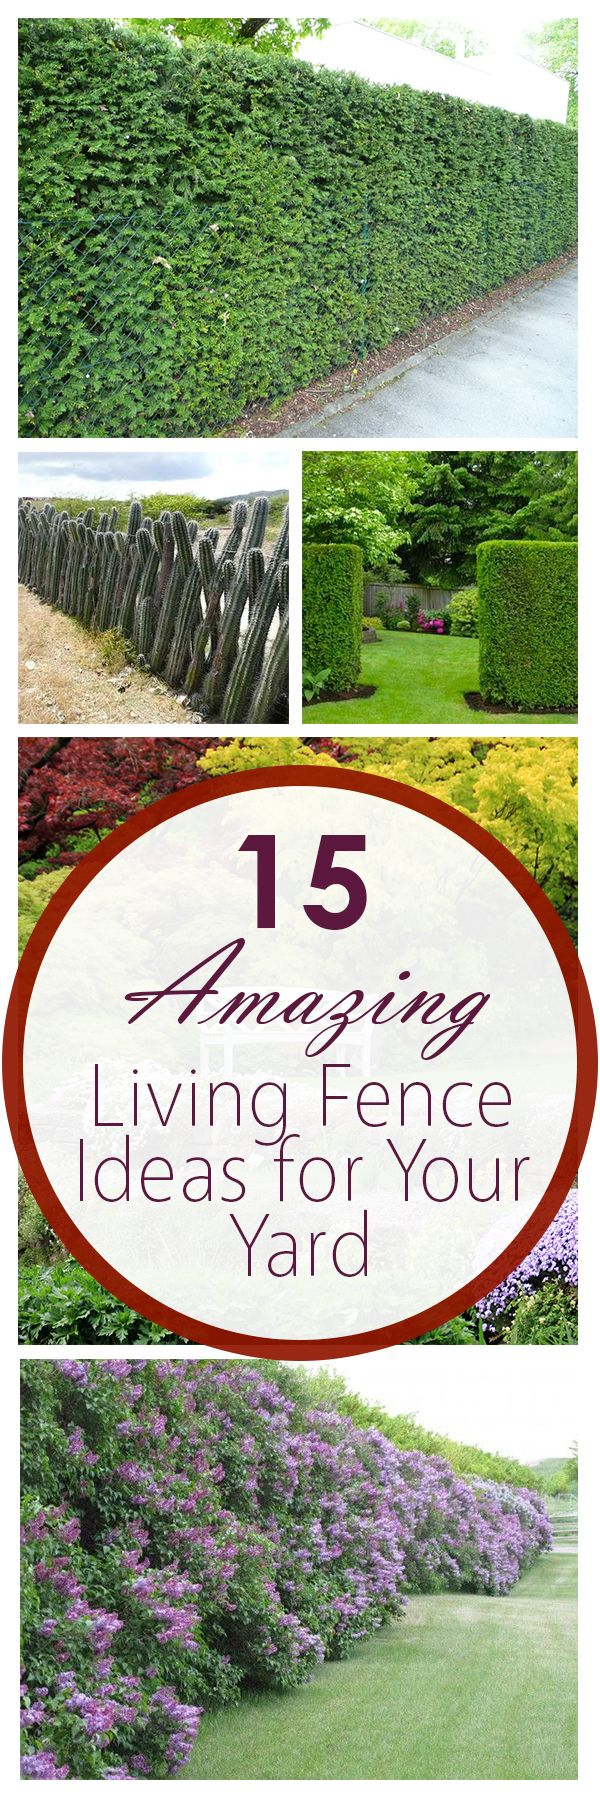 Best 20 privacy plants ideas on pinterest privacy trellis 15 amazing living fence ideas for your yard baanklon Gallery